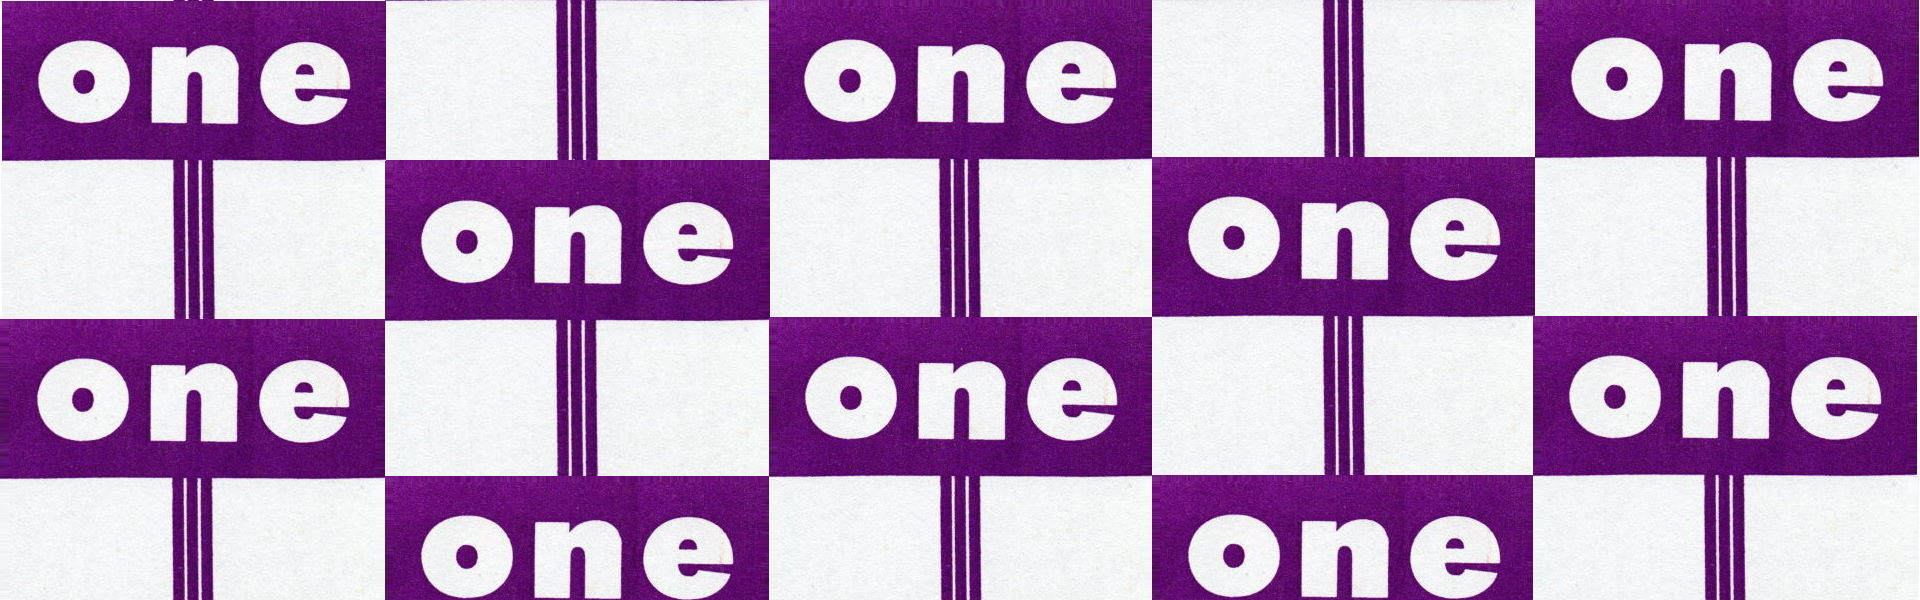 One Magazine (Los Angeles, CA, USA), January 1953, Periodical Collection